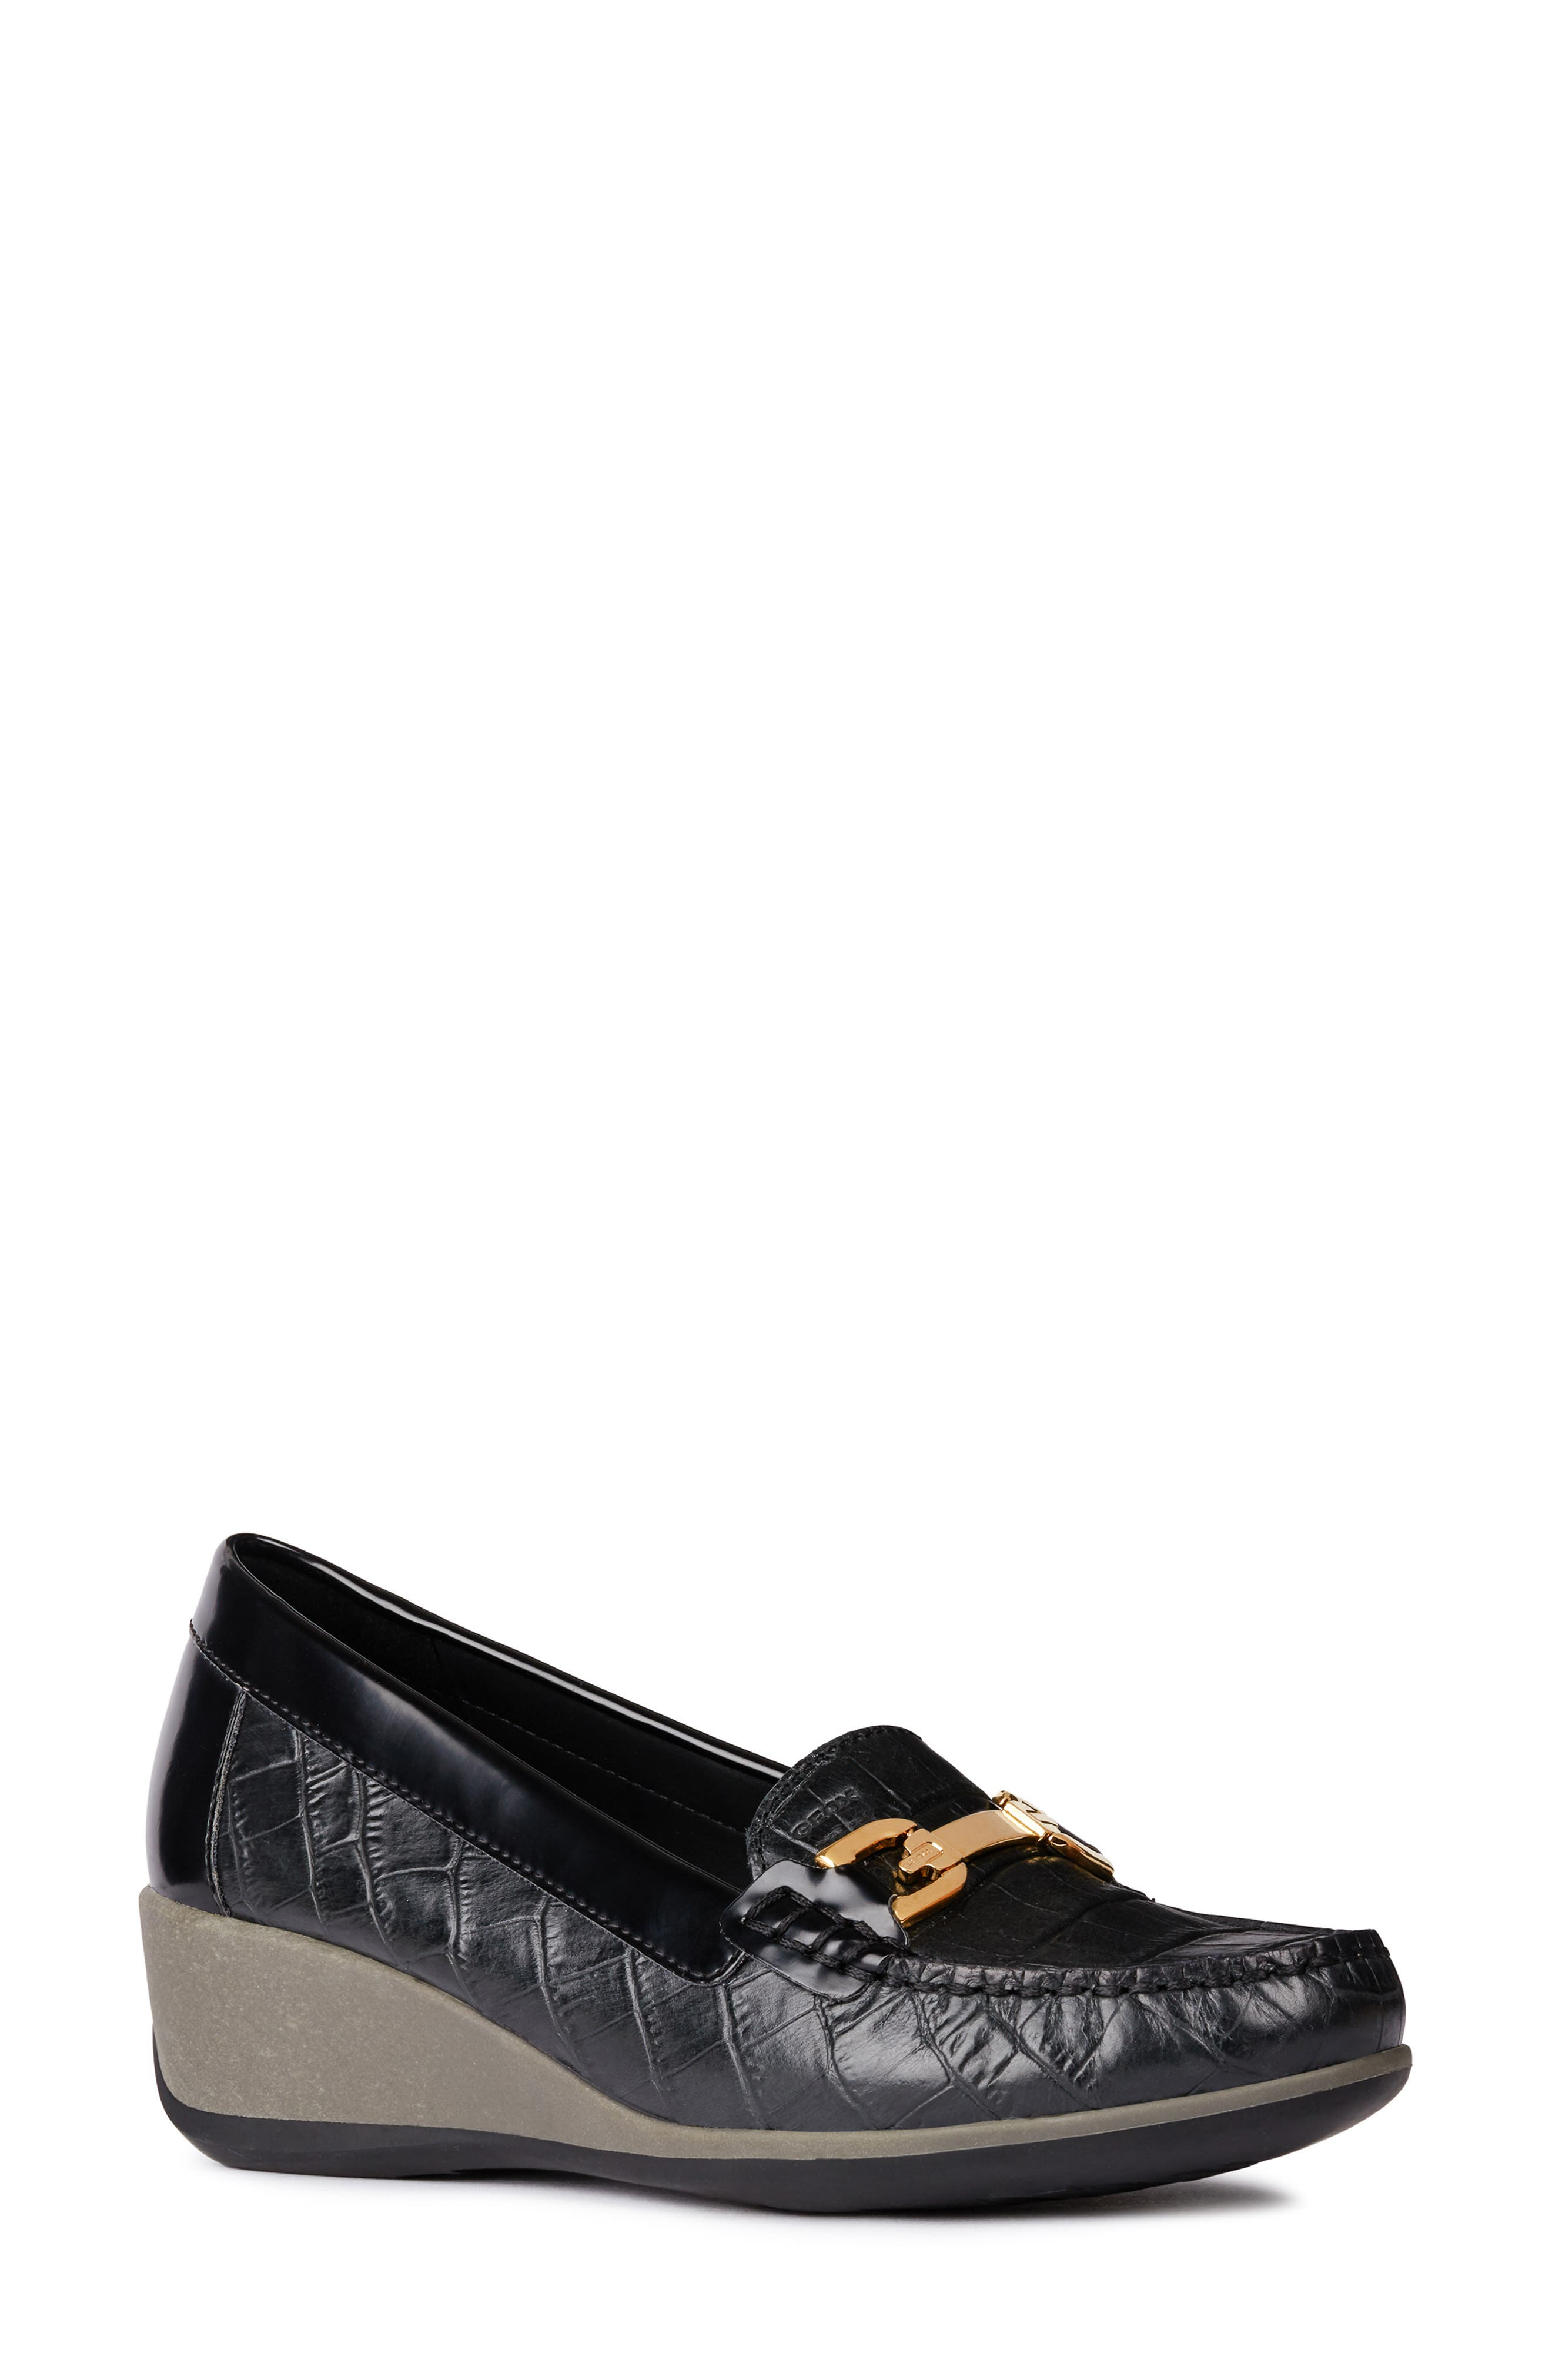 Arethea Loafer Wedge,                             Main thumbnail 1, color,                             BLACK LEATHER